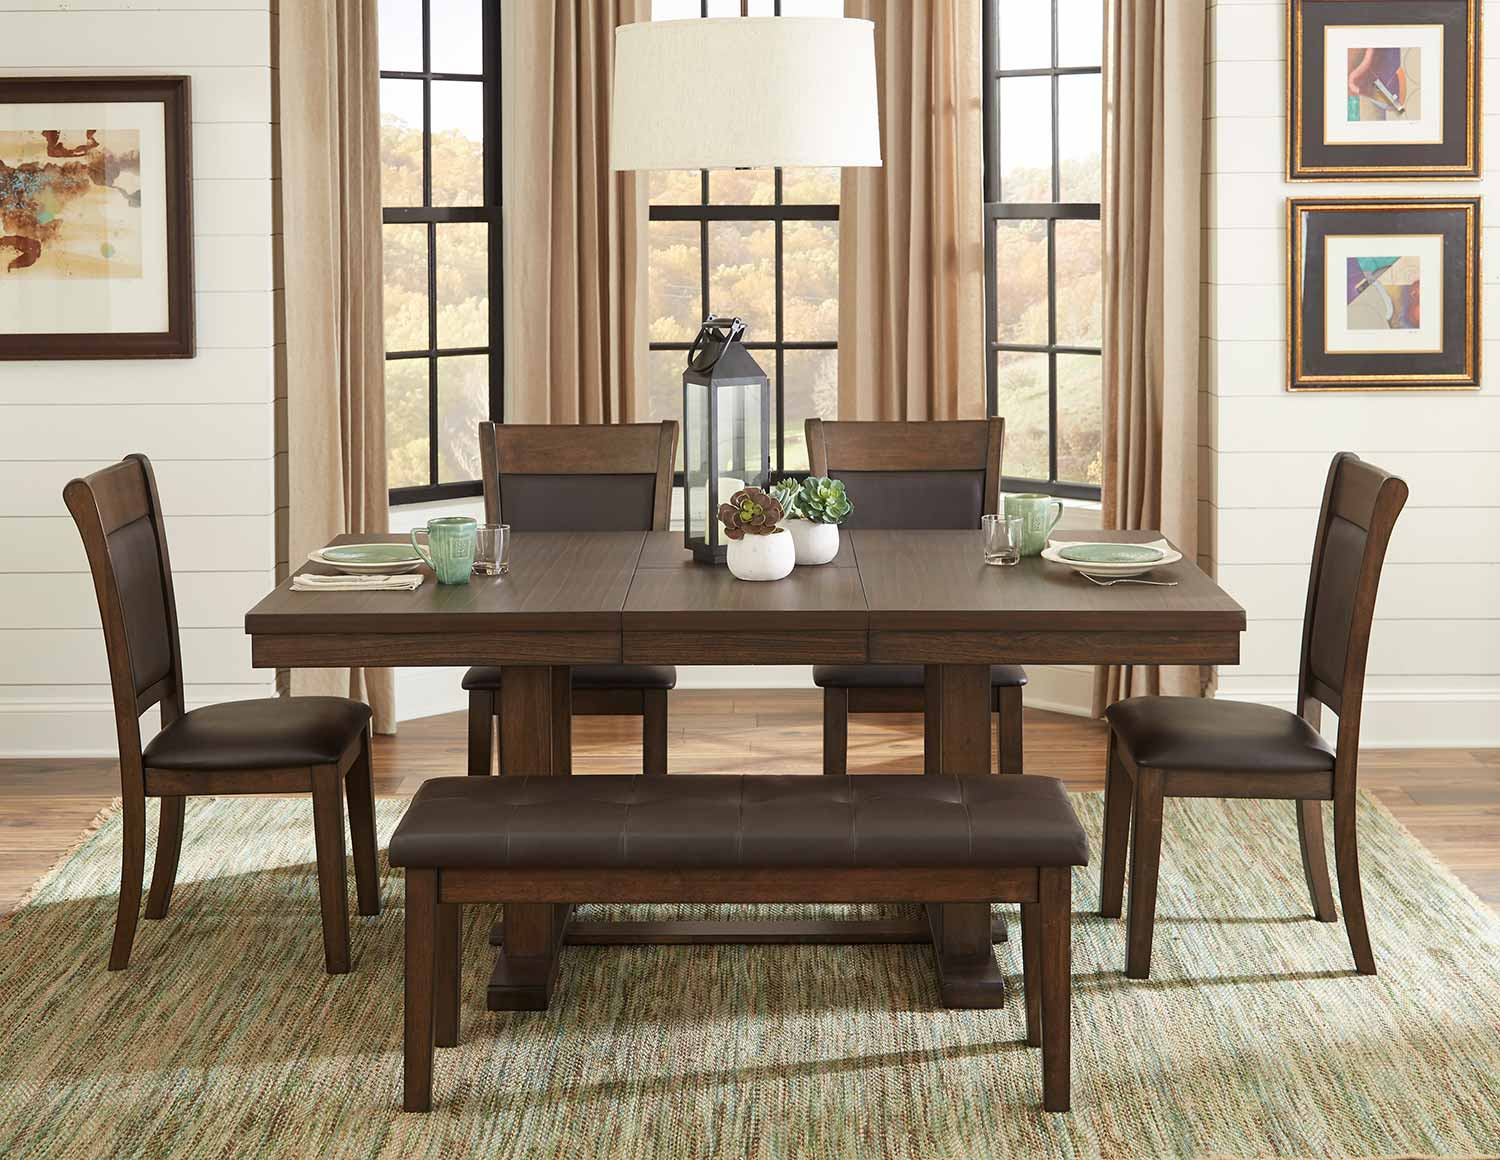 Homelegance Wieland Dining Set - Light Rustic Brown